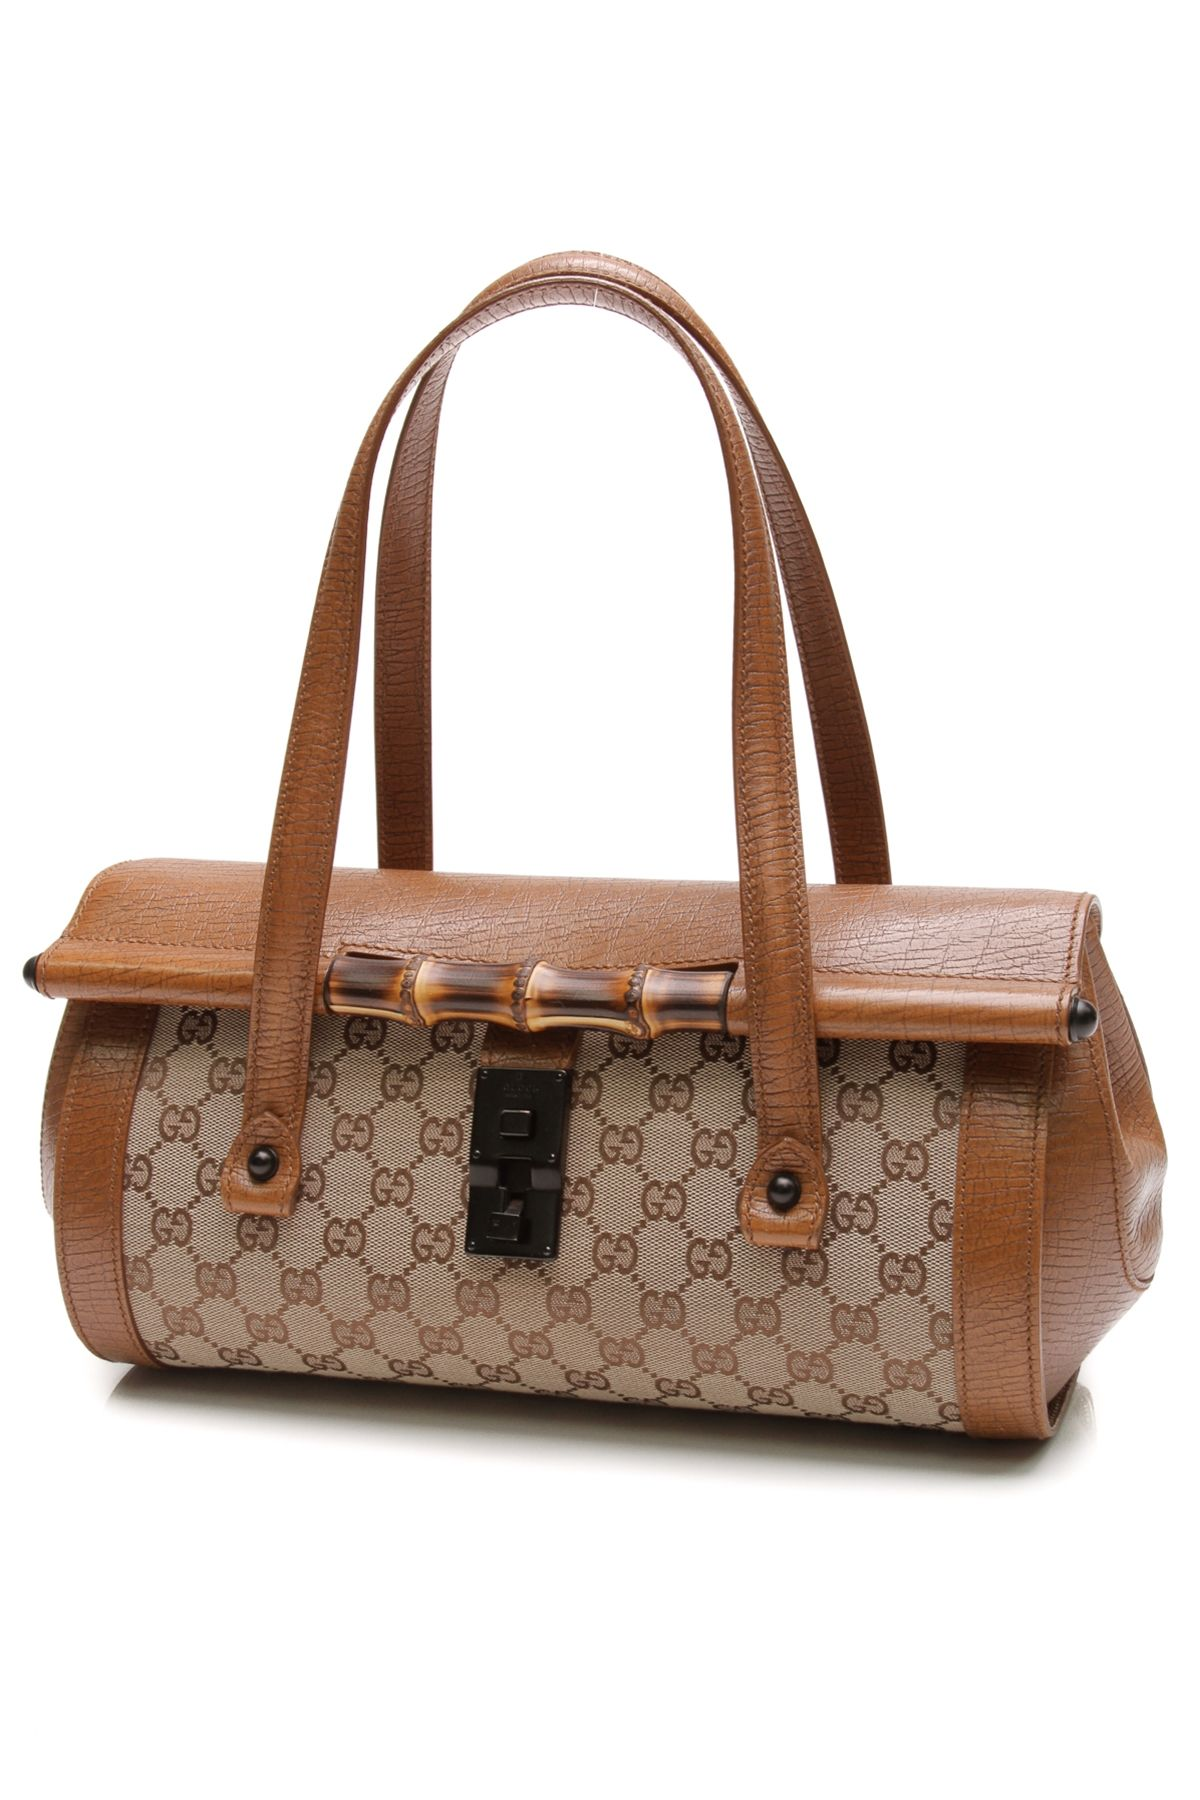 c79e7737aada3f Gucci bamboo is so timeless | Gucci Glam | Gucci bamboo, Gucci, Bags